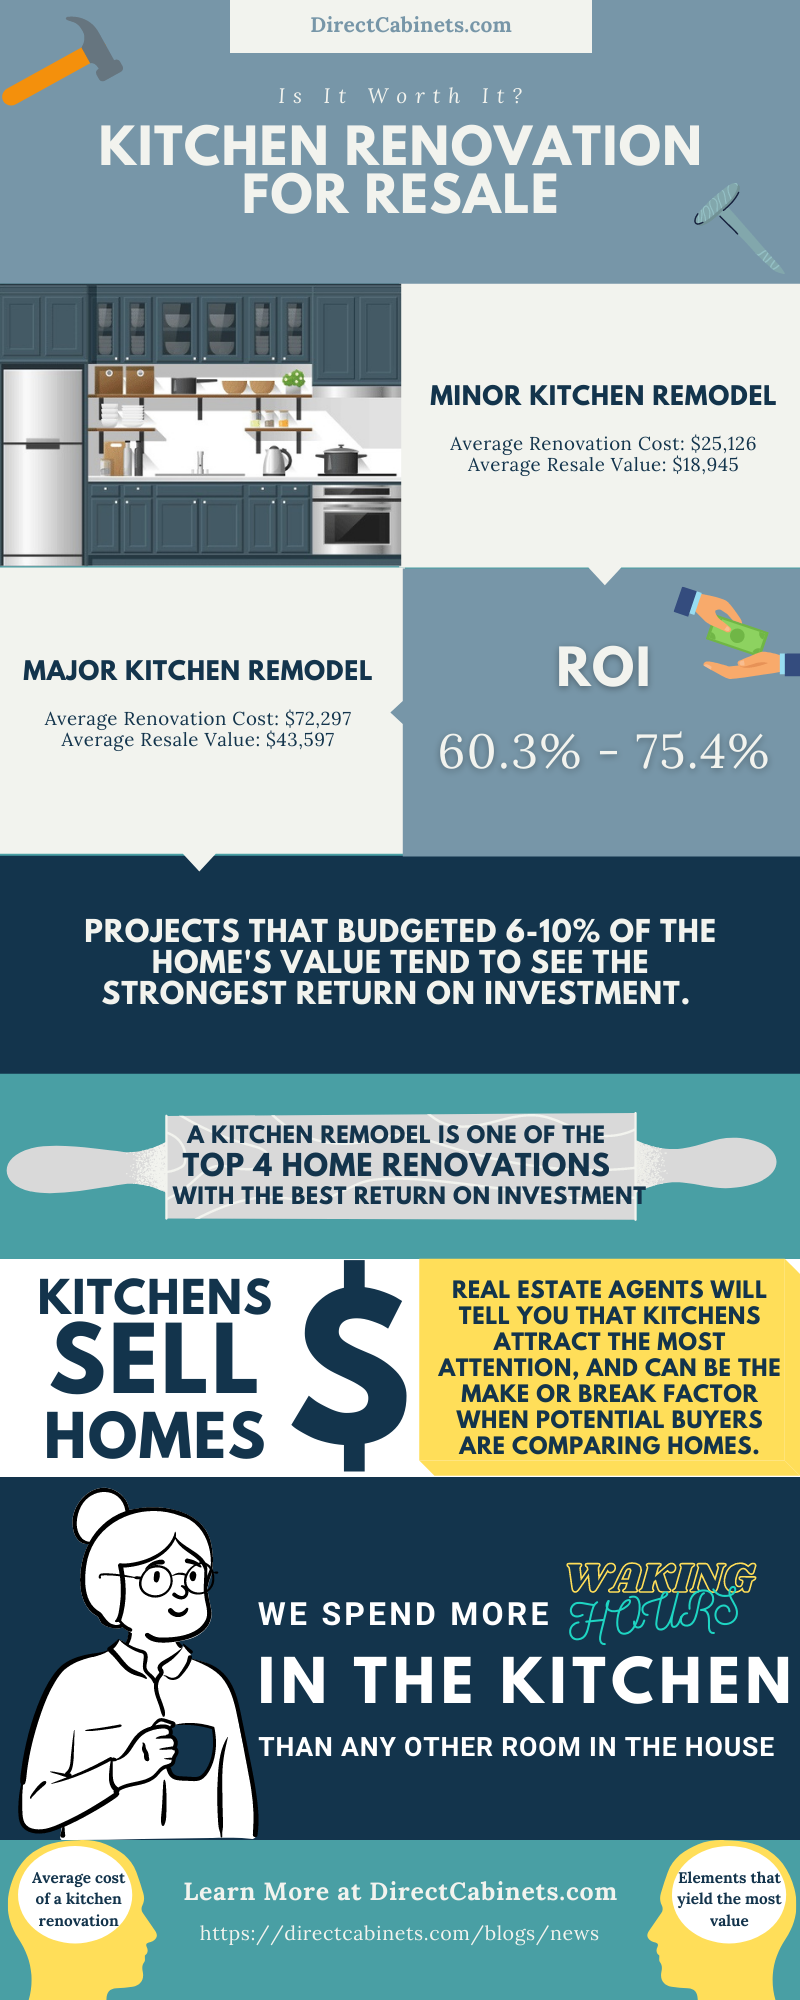 Is a Kitchen Renovation worth the investment when it comes to resale?